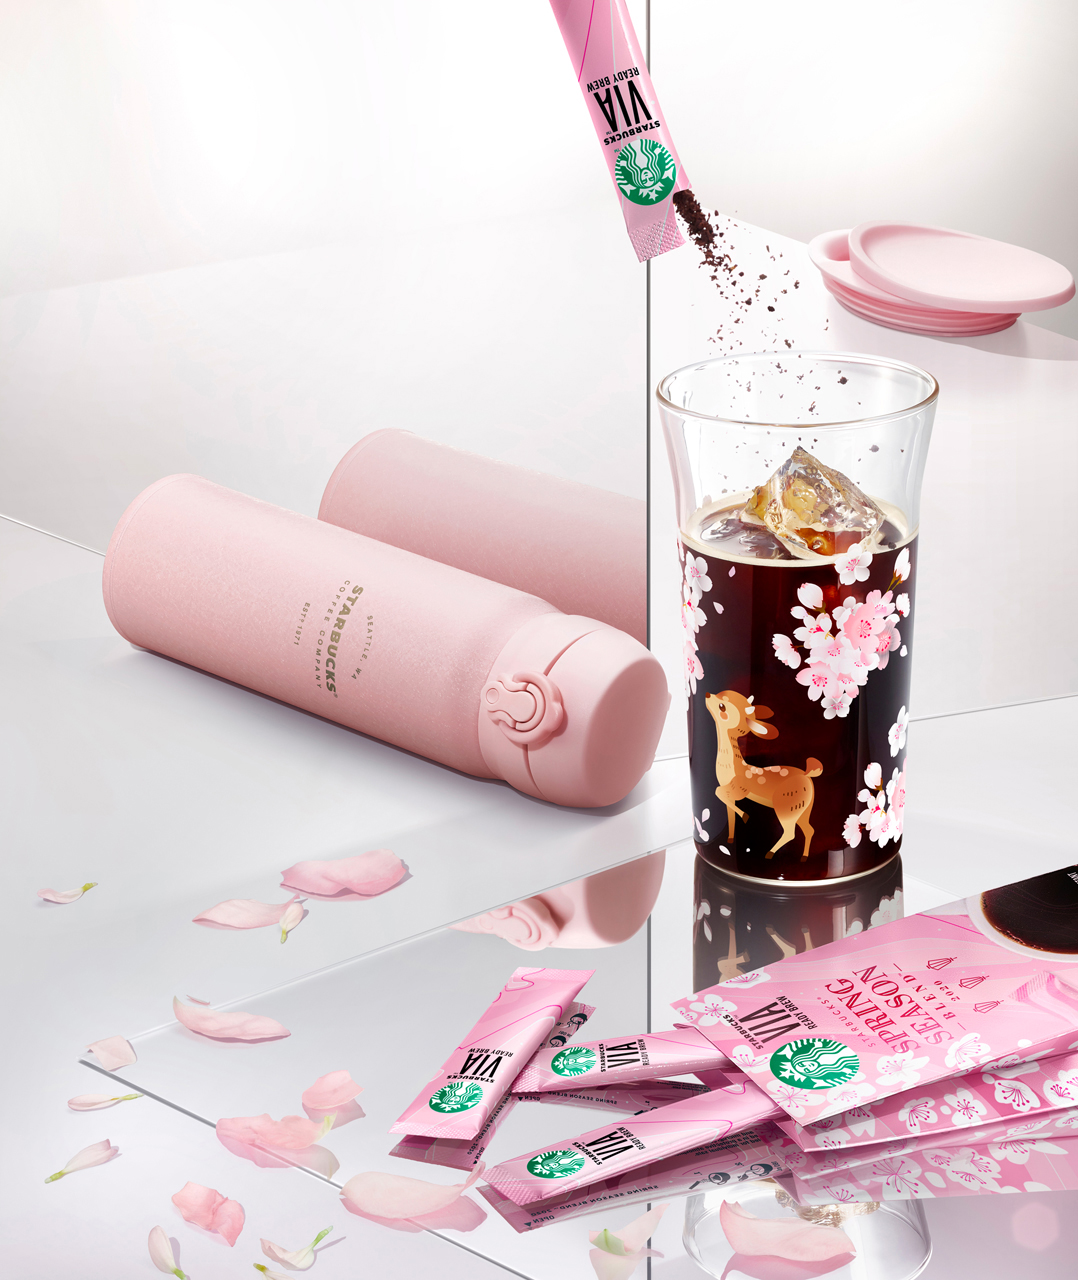 Sabine-Scheer-commercialphotography-starbucks-china-cherryblossoms